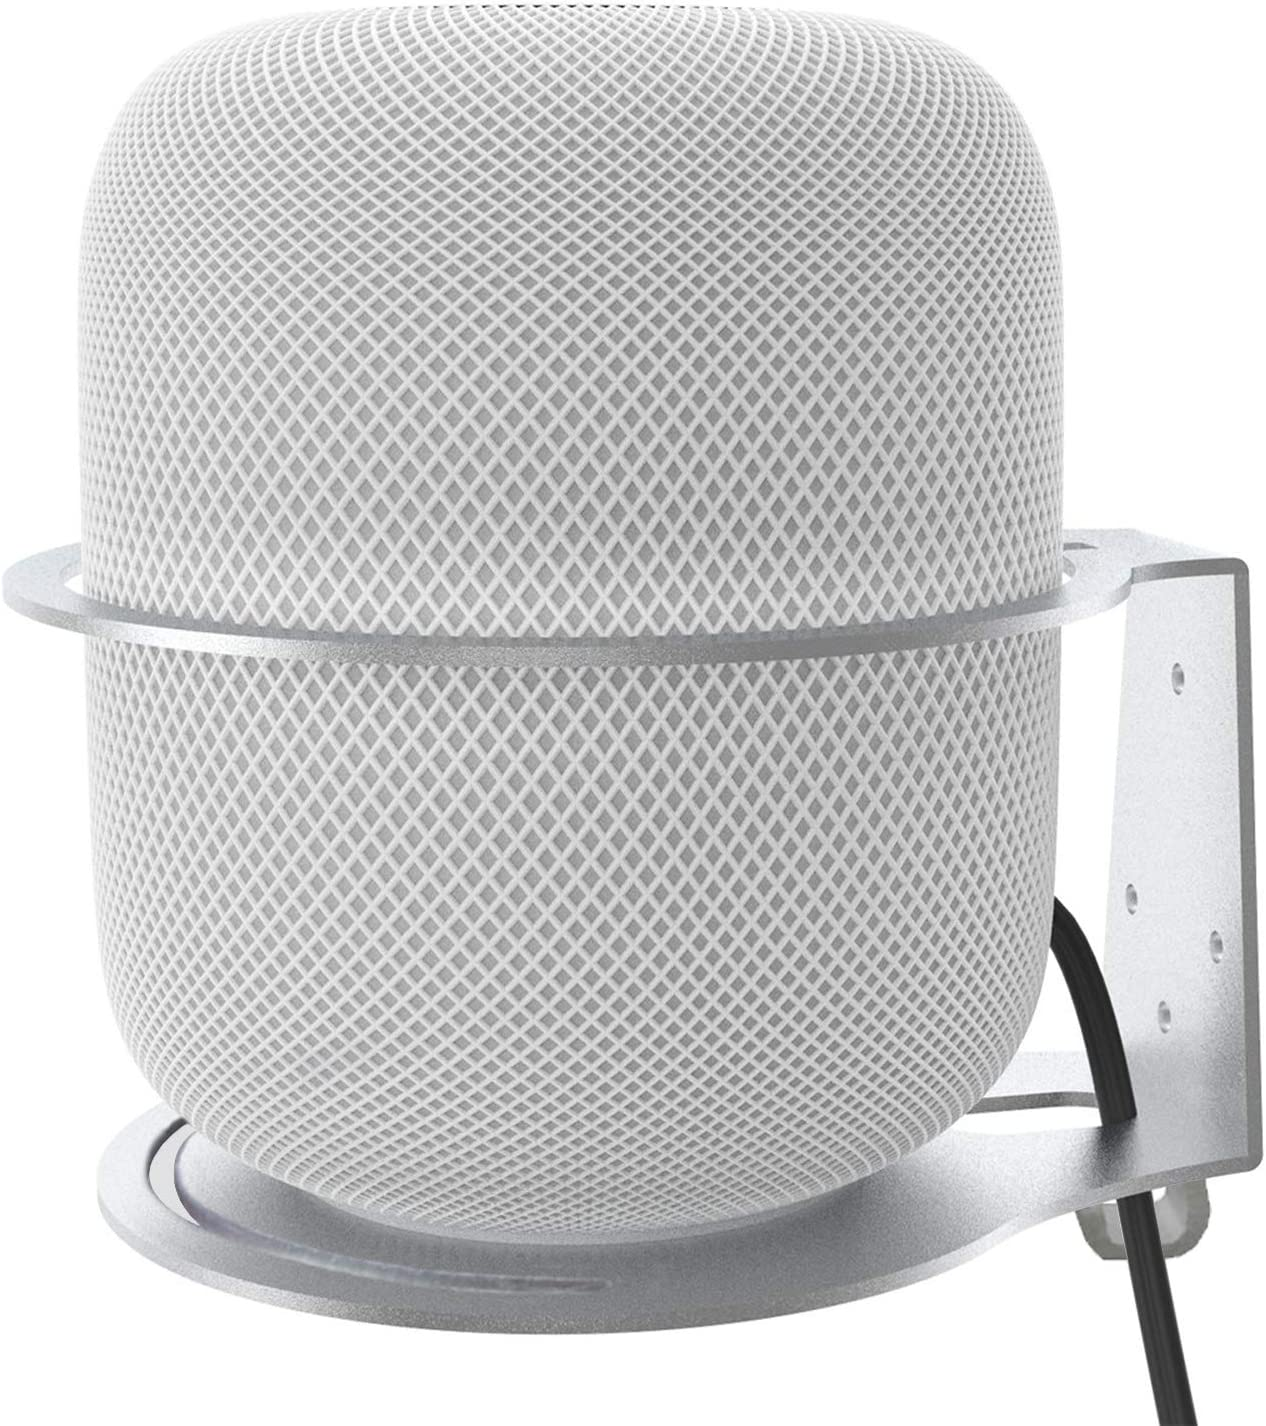 oGoDeal Wall Mount Stand Compatible with HomePod Aluminum Alloy Made Bracket Anti-Scroll Holder for HomePod Smart Speaker Accessories -Silver